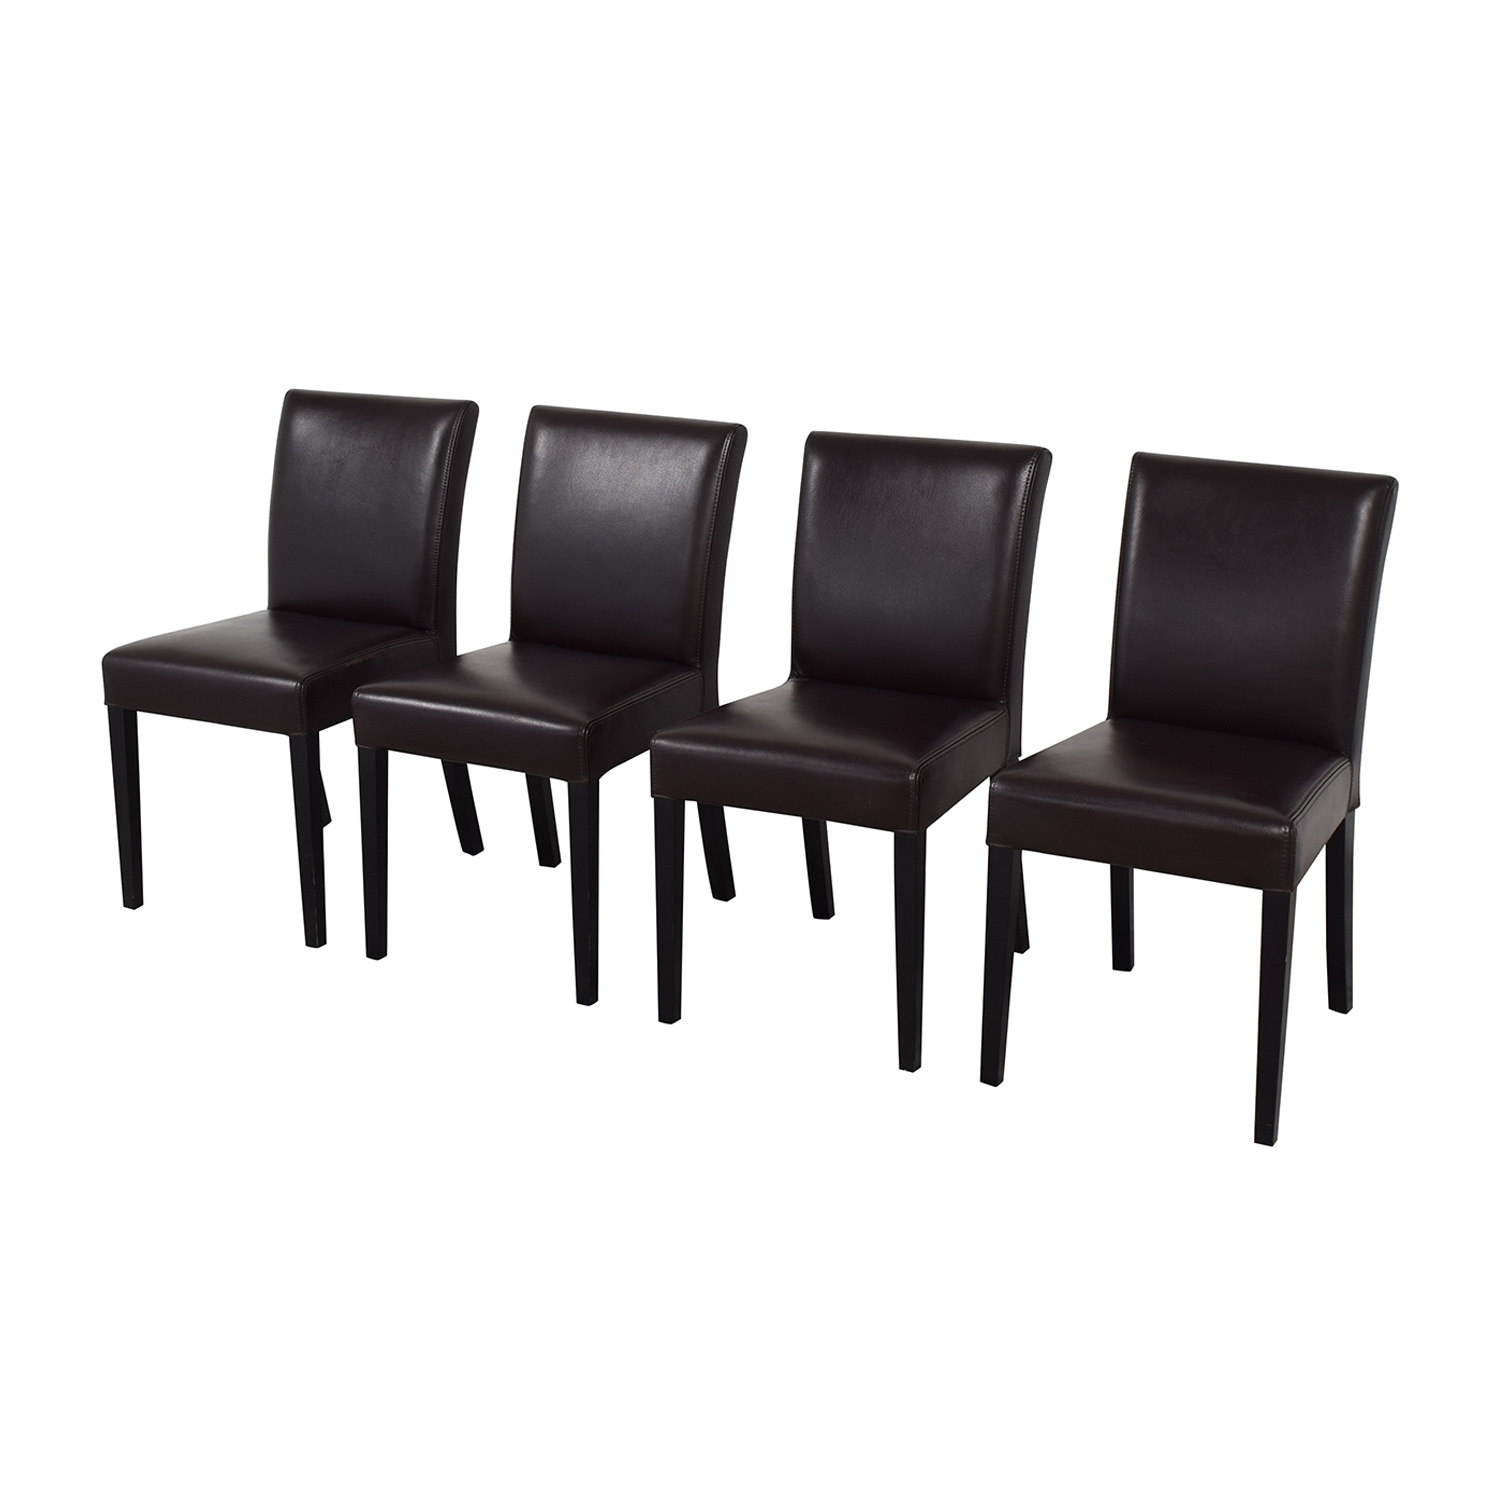 Crate & Barrel Crate & Barrel Lowe Dining Chairs nyc